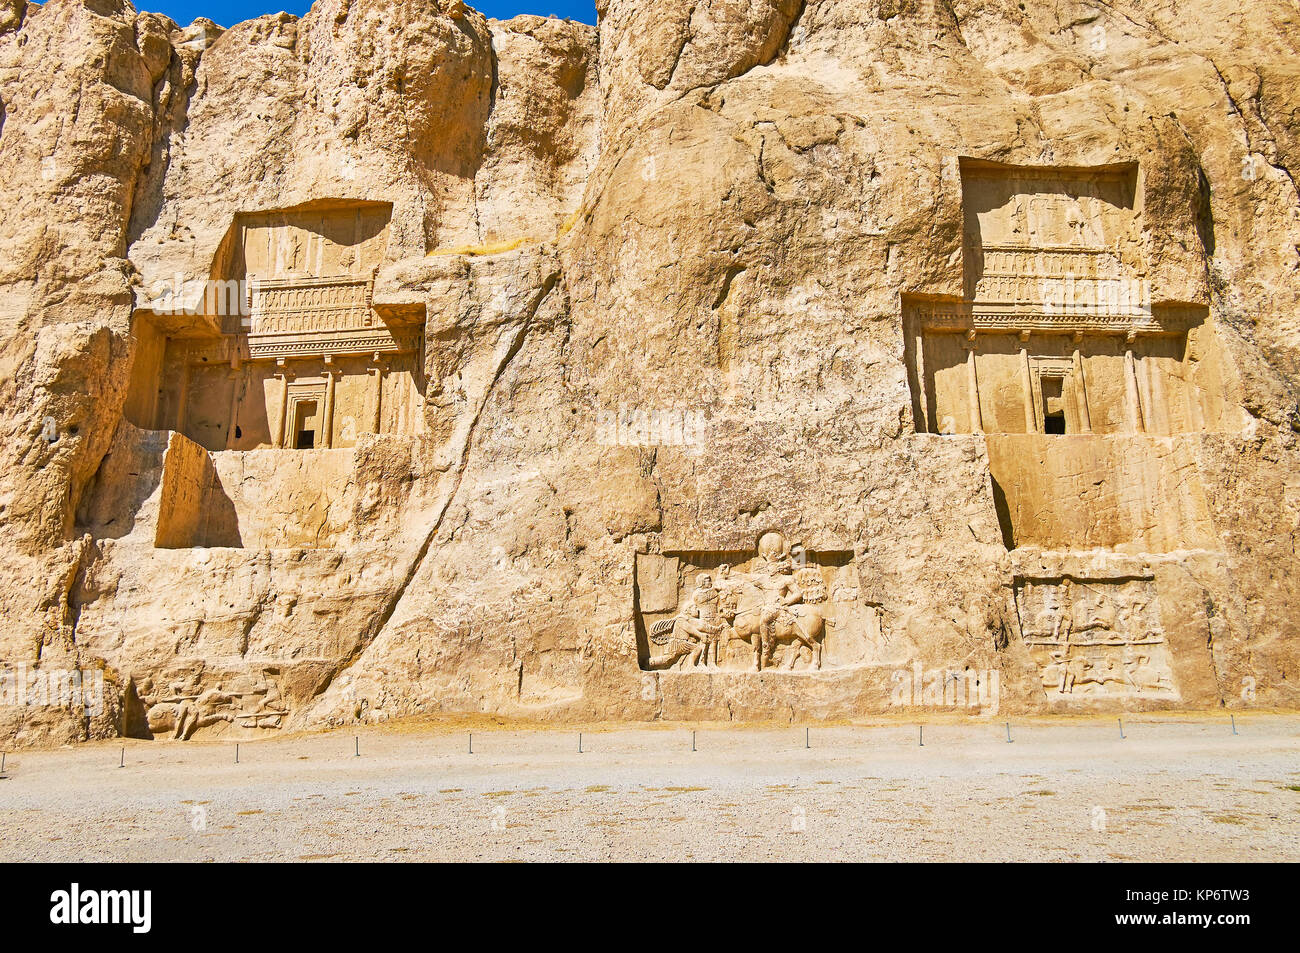 The giant tombs of Naqsh-e Rustam archaeological site are neighboring with equestrian reliefs, carved in rocky cliff, - Stock Image